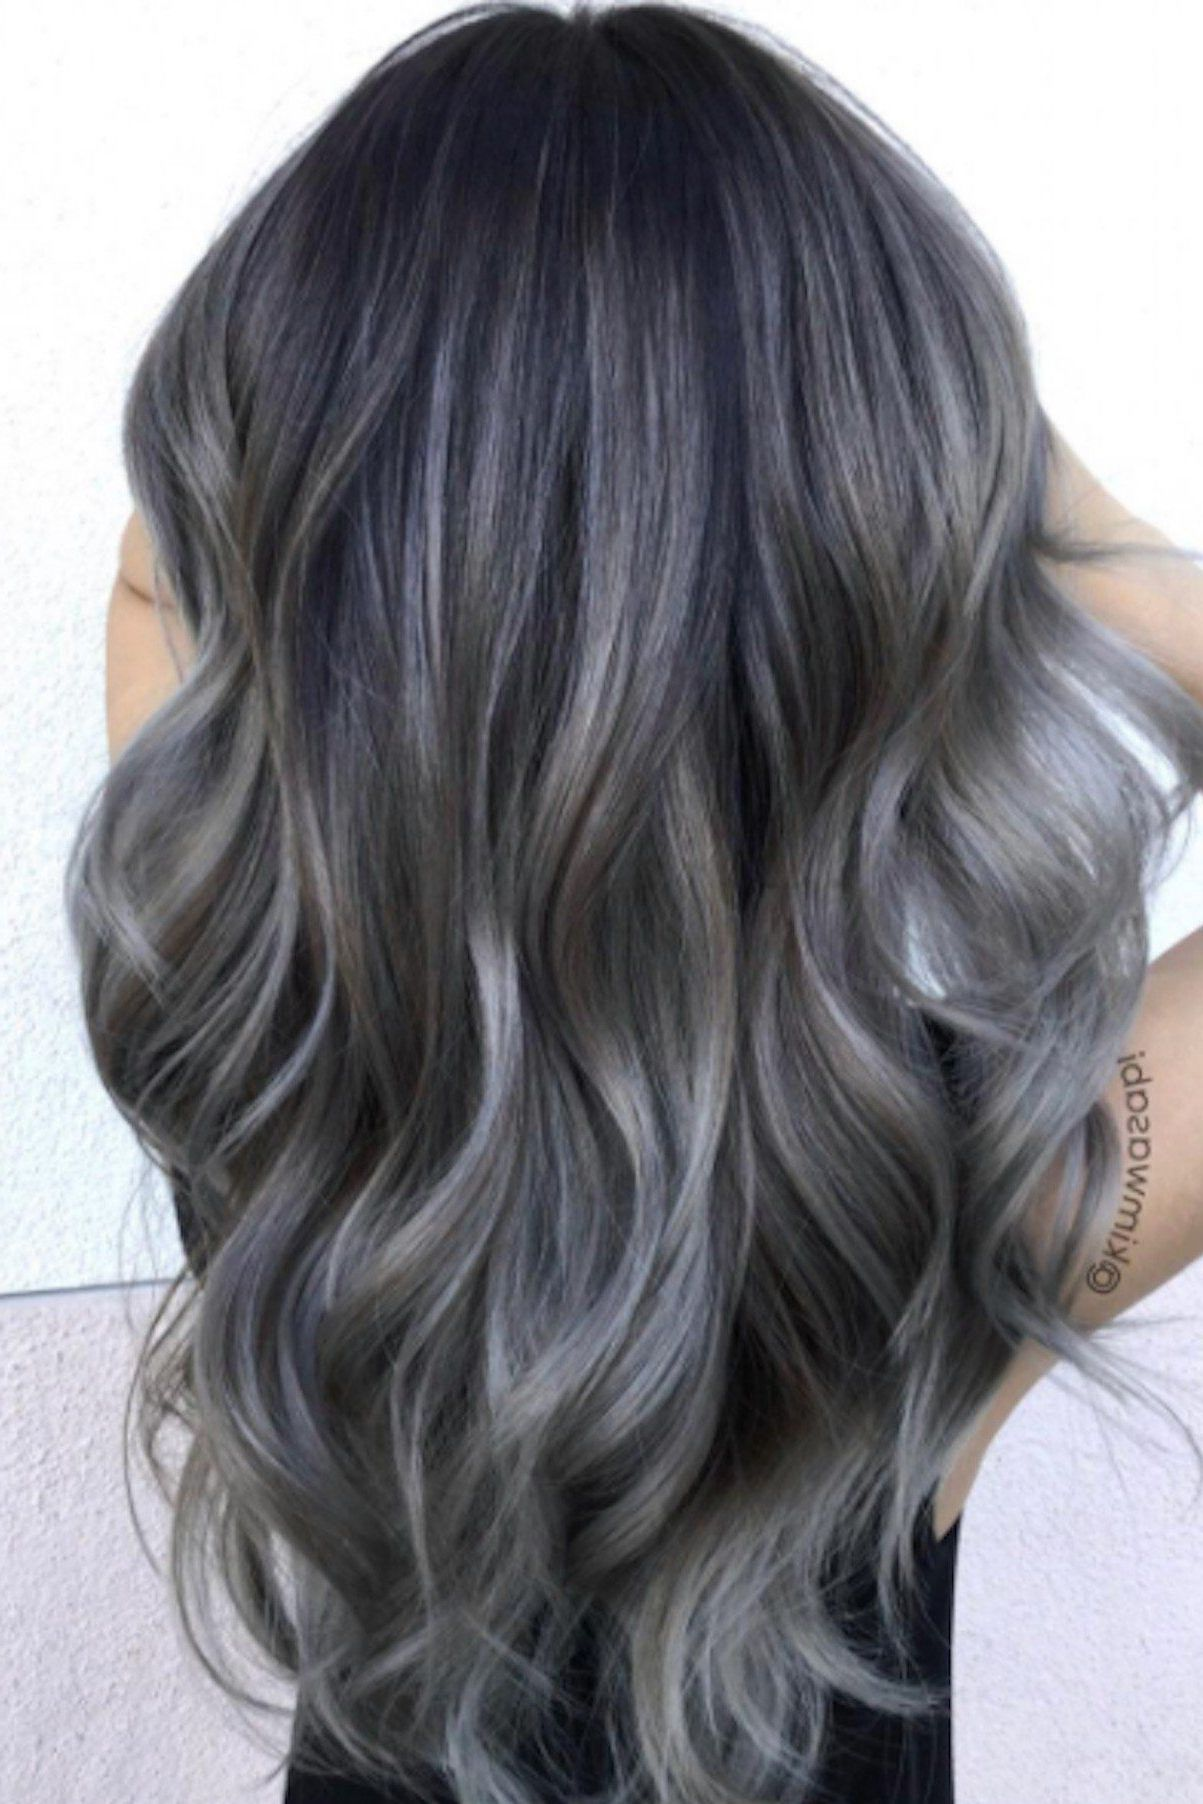 50 Gray Silver Hair Color Ideas In 2019 Silver Hair Trend Hair Color As Well As Attitude And These Days Not Silver Grey Hair Silver Hair Color Ash Hair Color